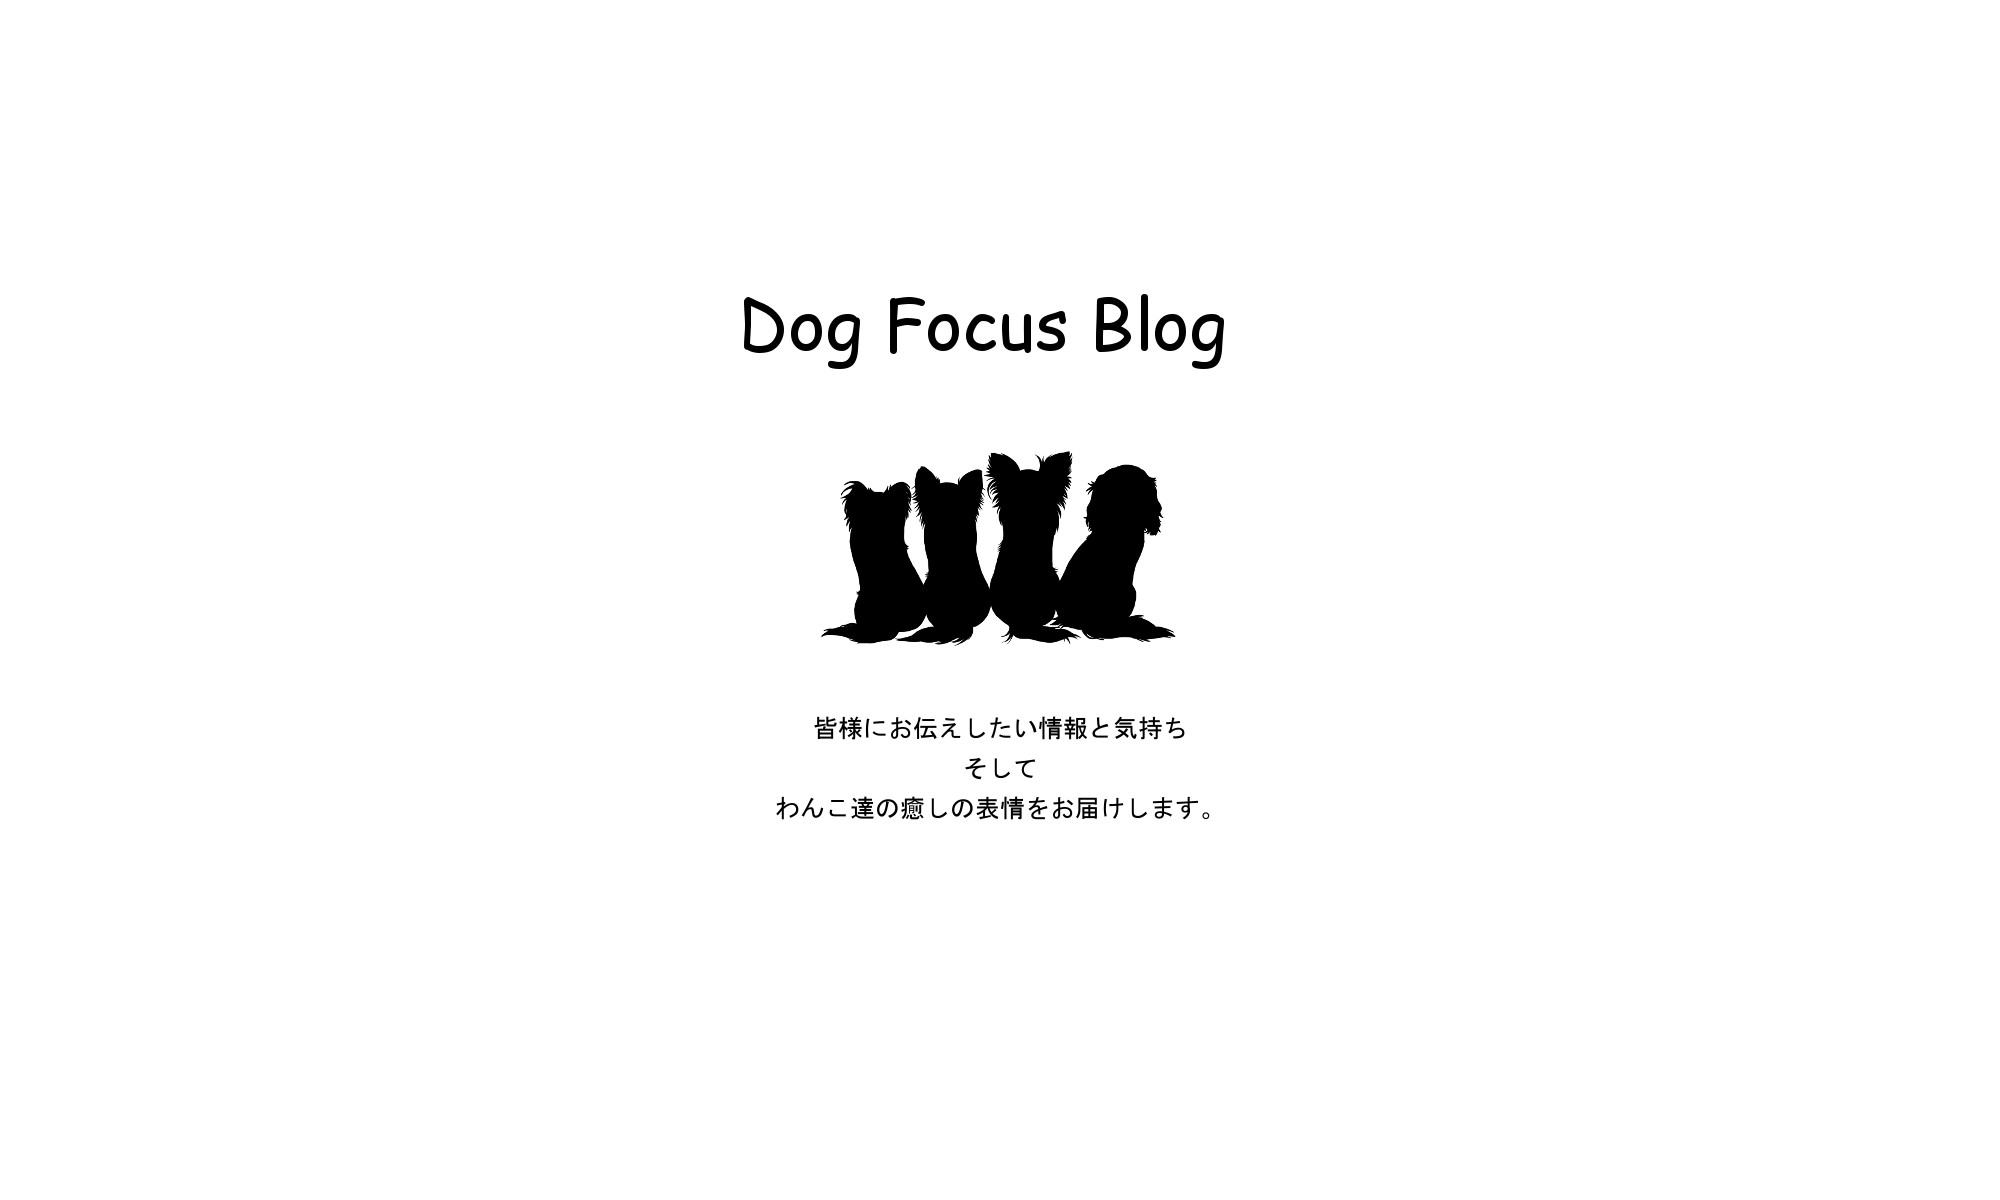 Dog Focus blog